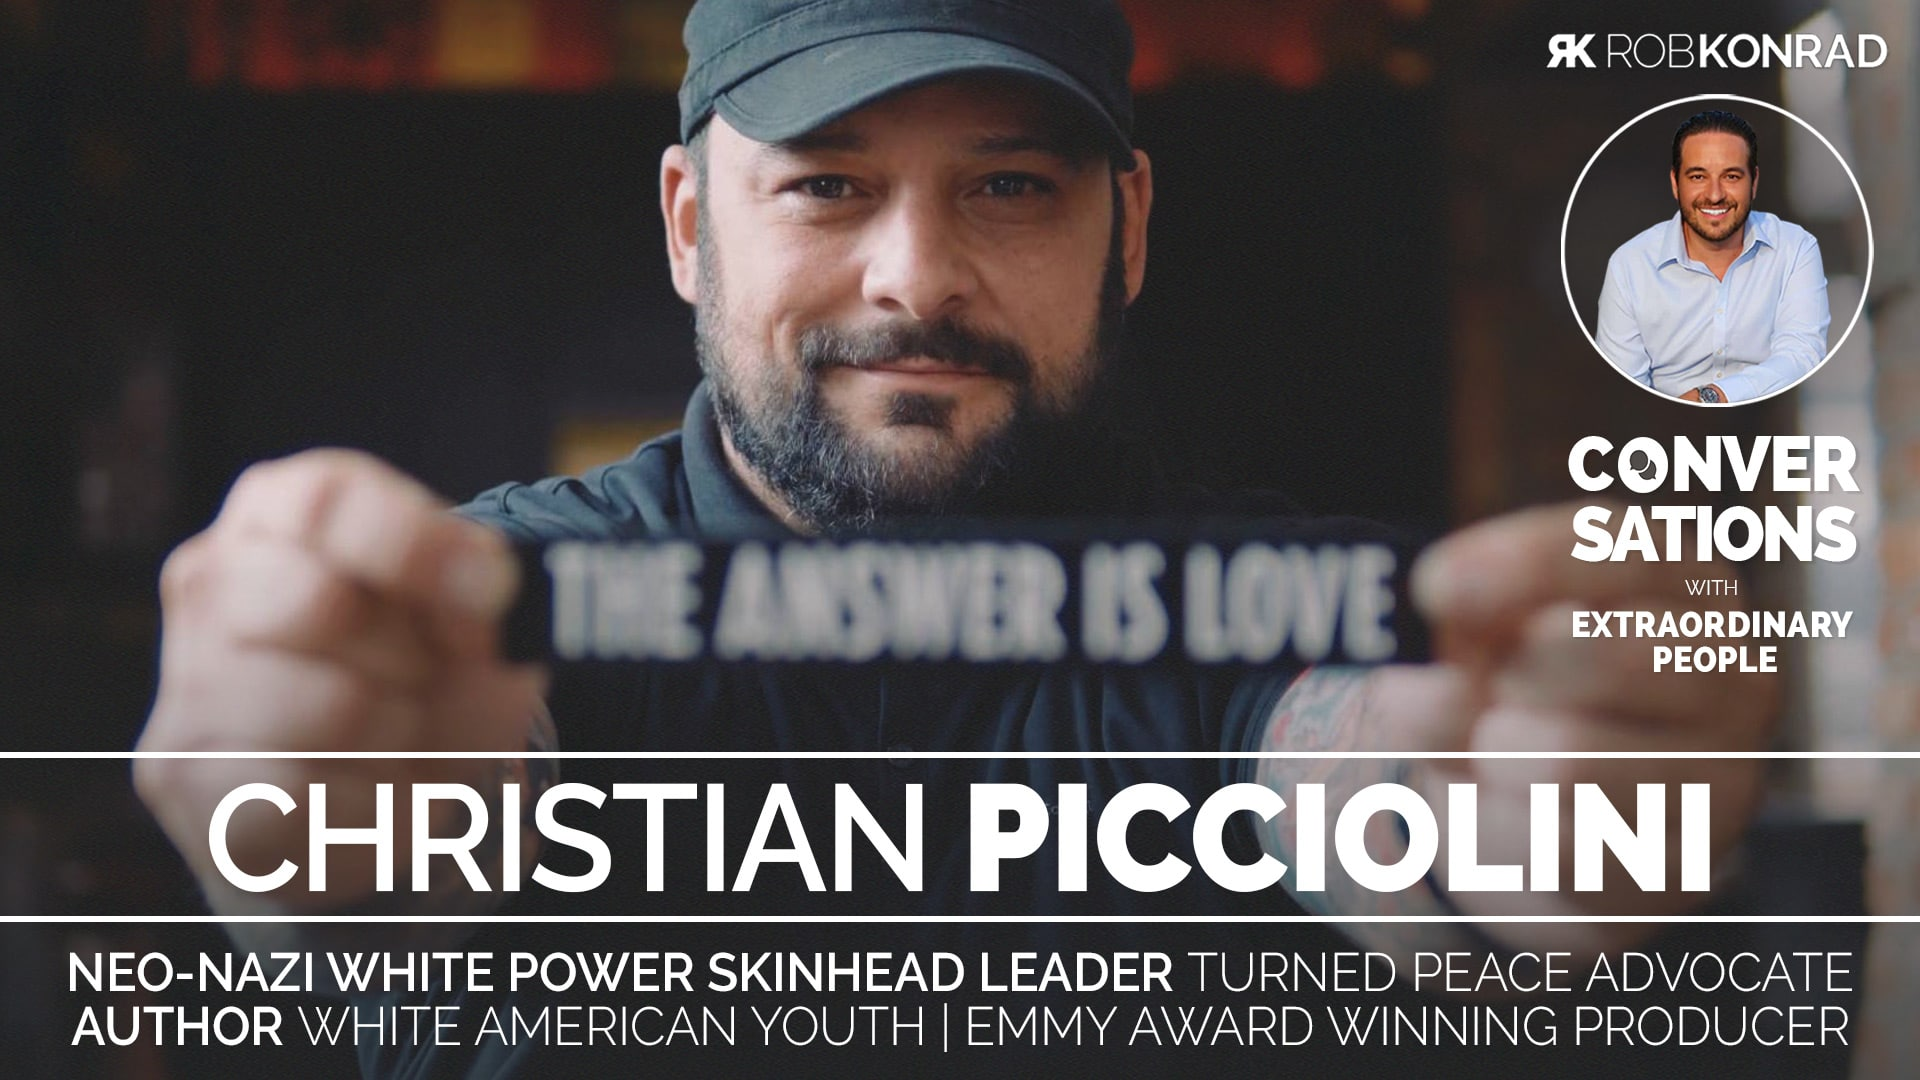 0003-Christian-Picciolini--Rob-Konrad-Conversations-WIDE